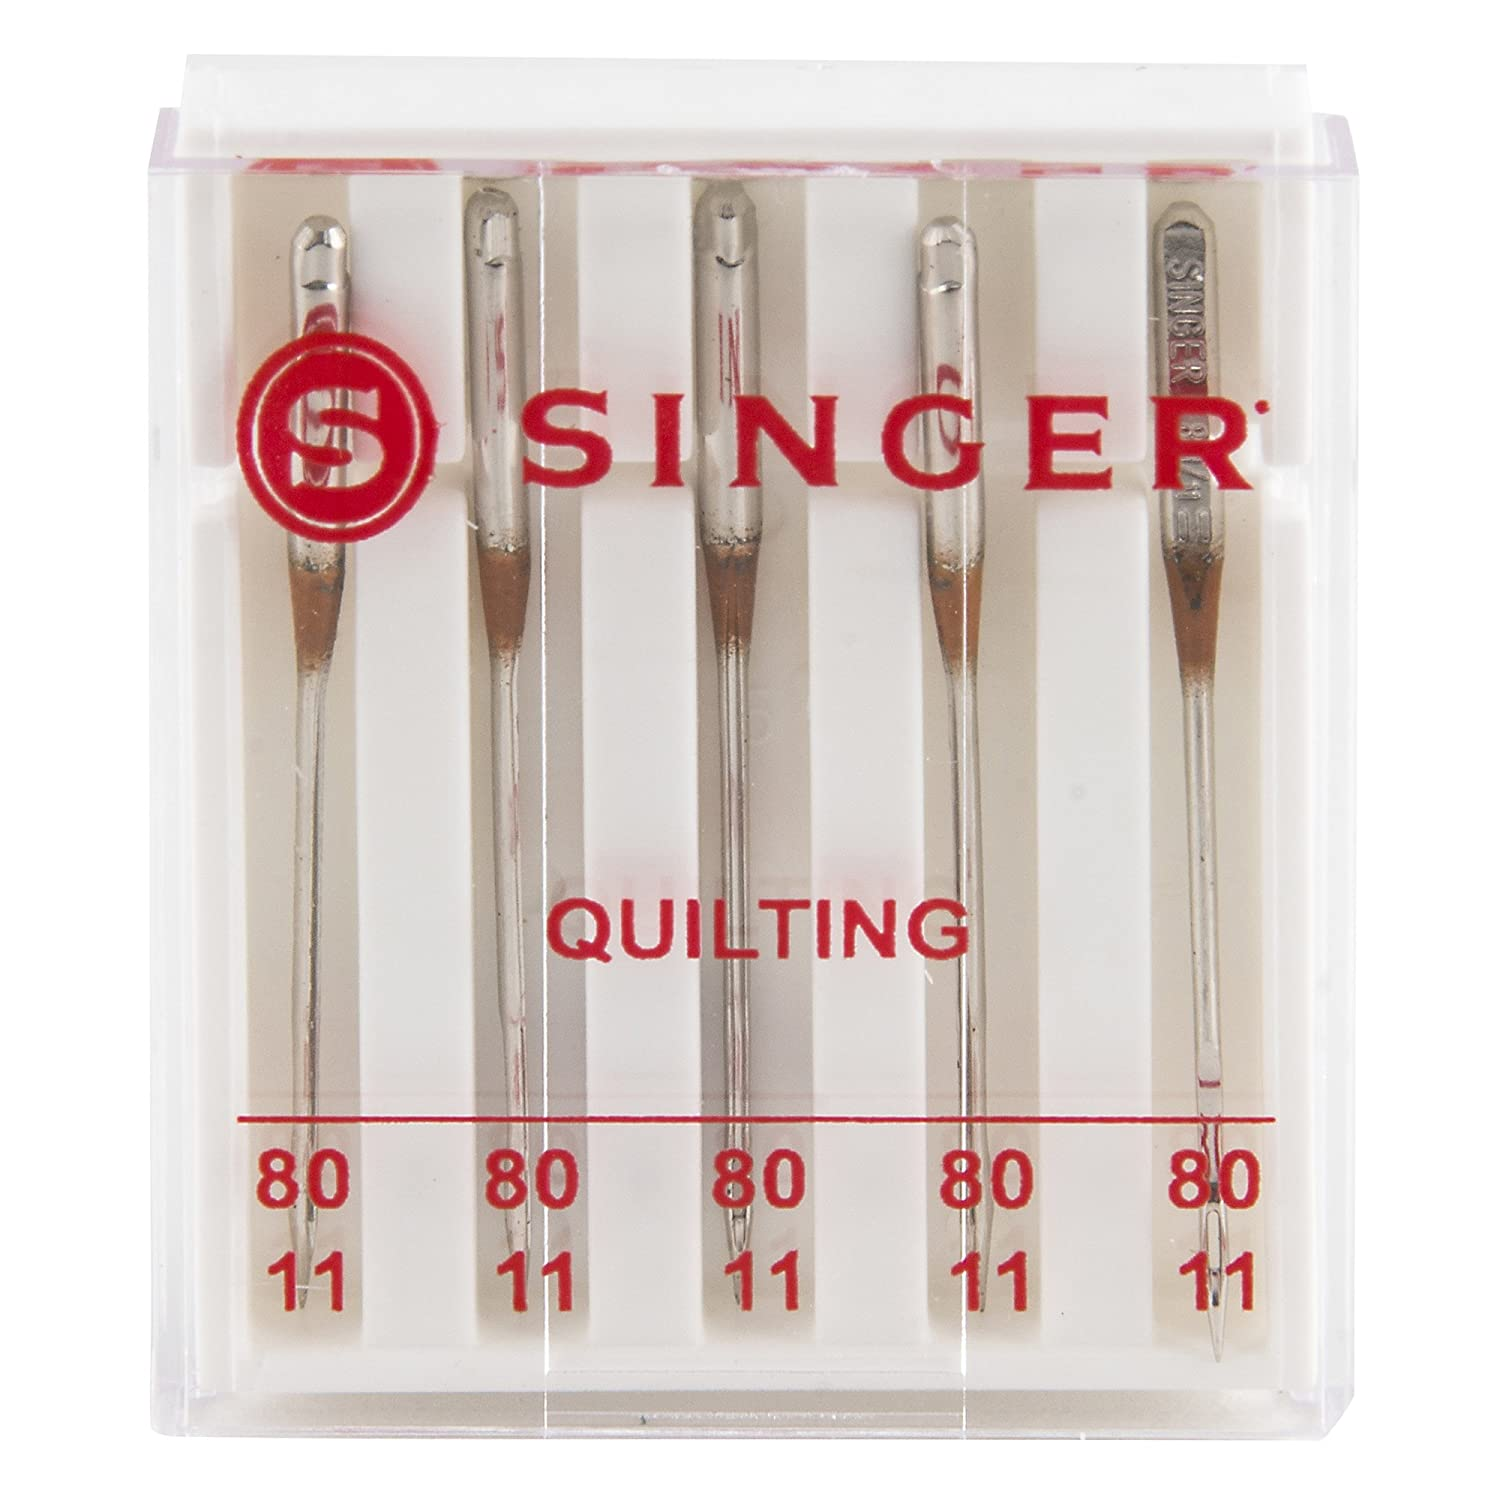 SINGER 04713 Size 80//11 Universal Machine Quilting Needles 5-Count